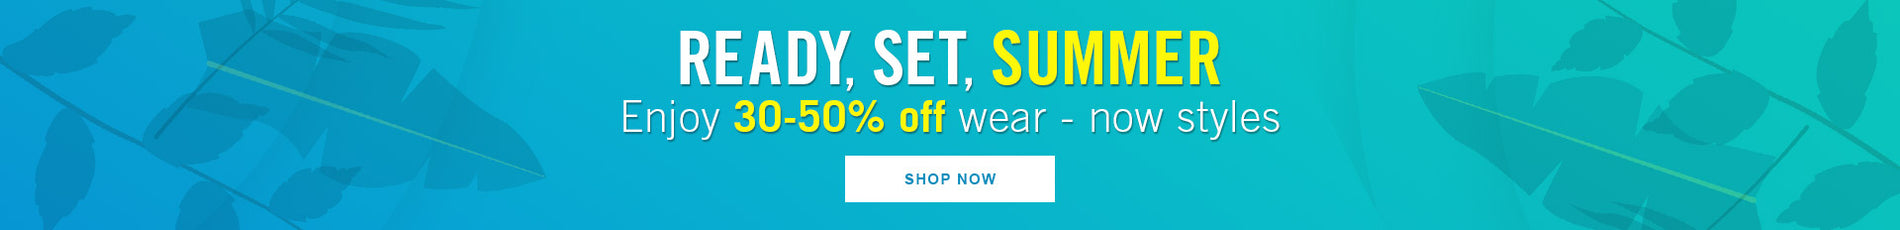 ready set summer - enjoy 30-50% off wear-now styles | SHOP NOW